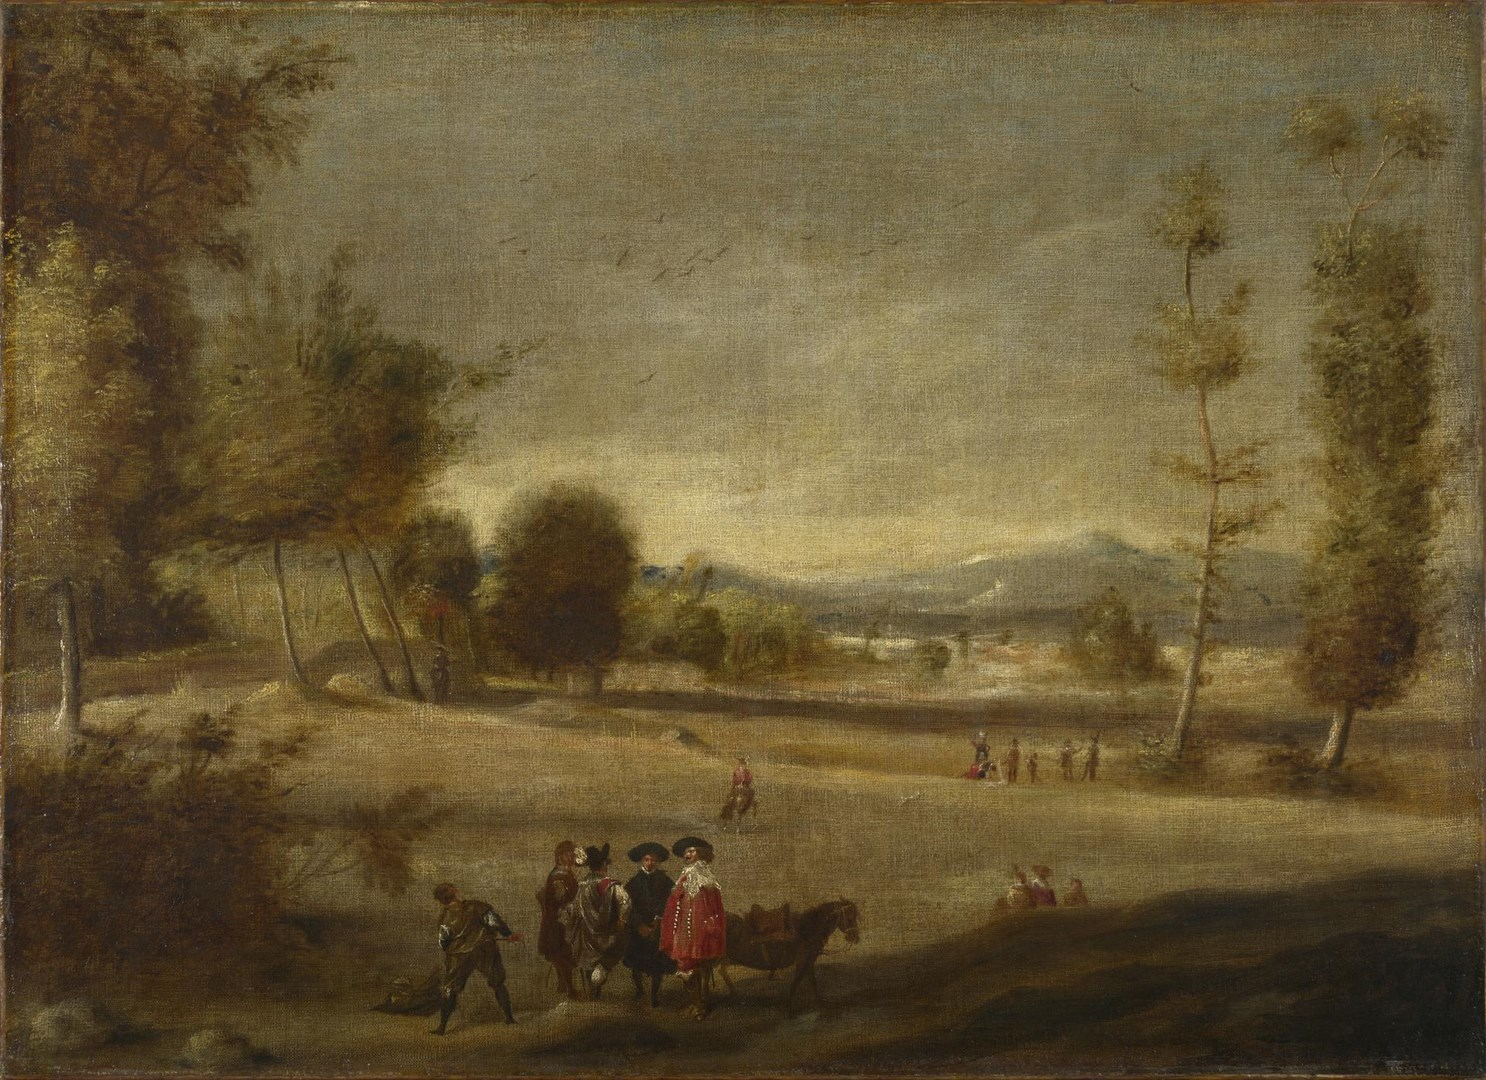 Landscape with Figures by Spanish